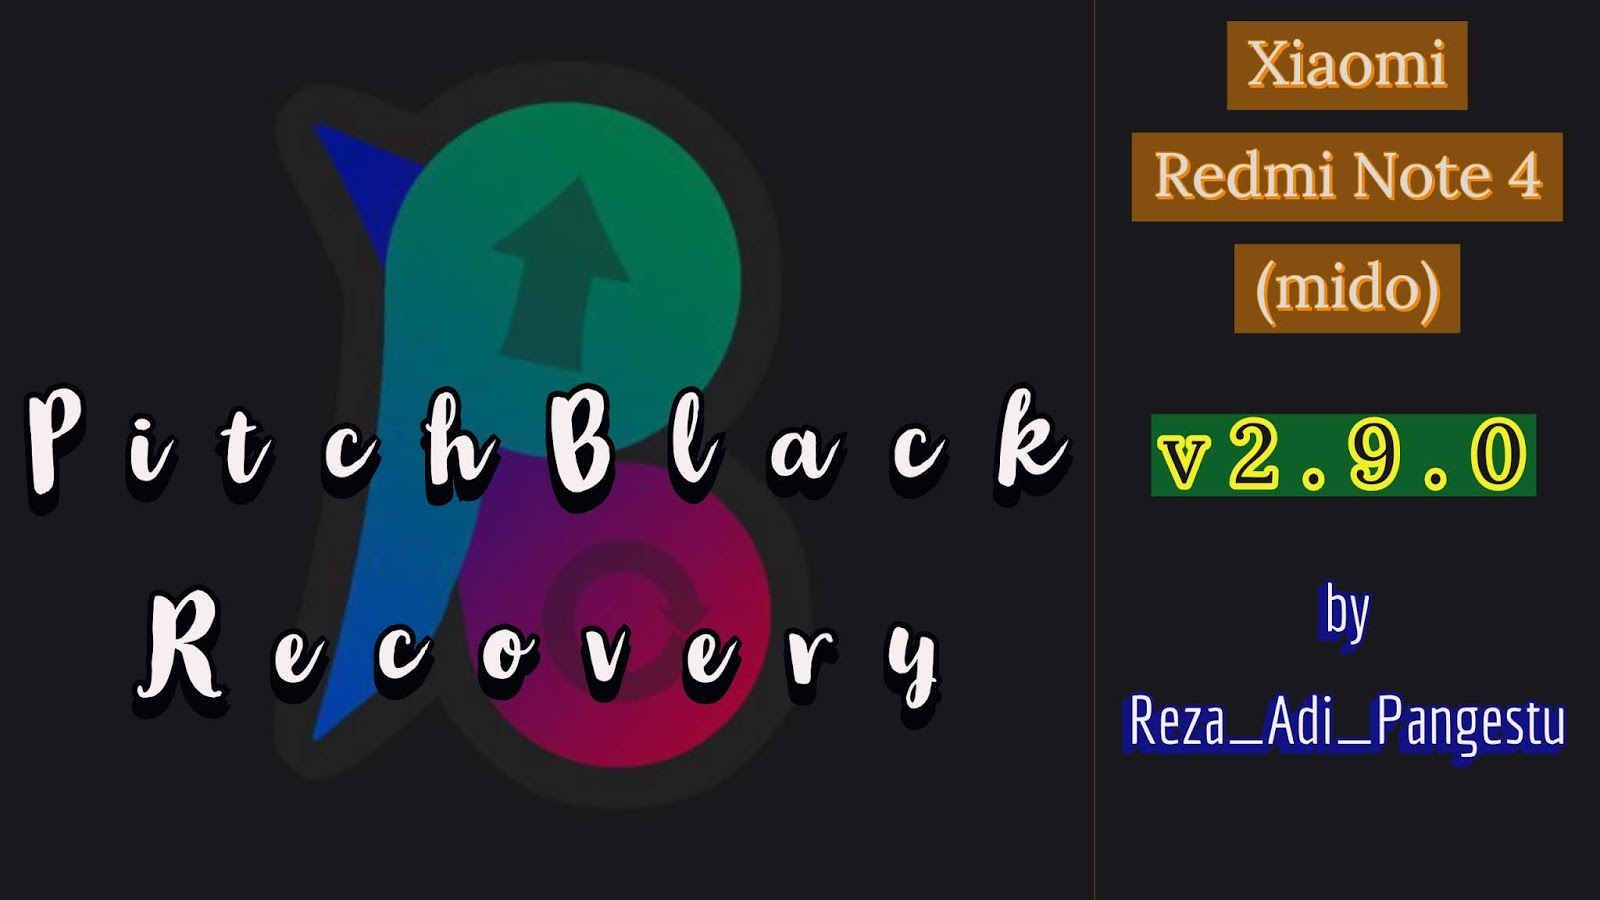 PitchBlack Recovery v2 9 0 Official Build for Xiaomi Redmi Note 4